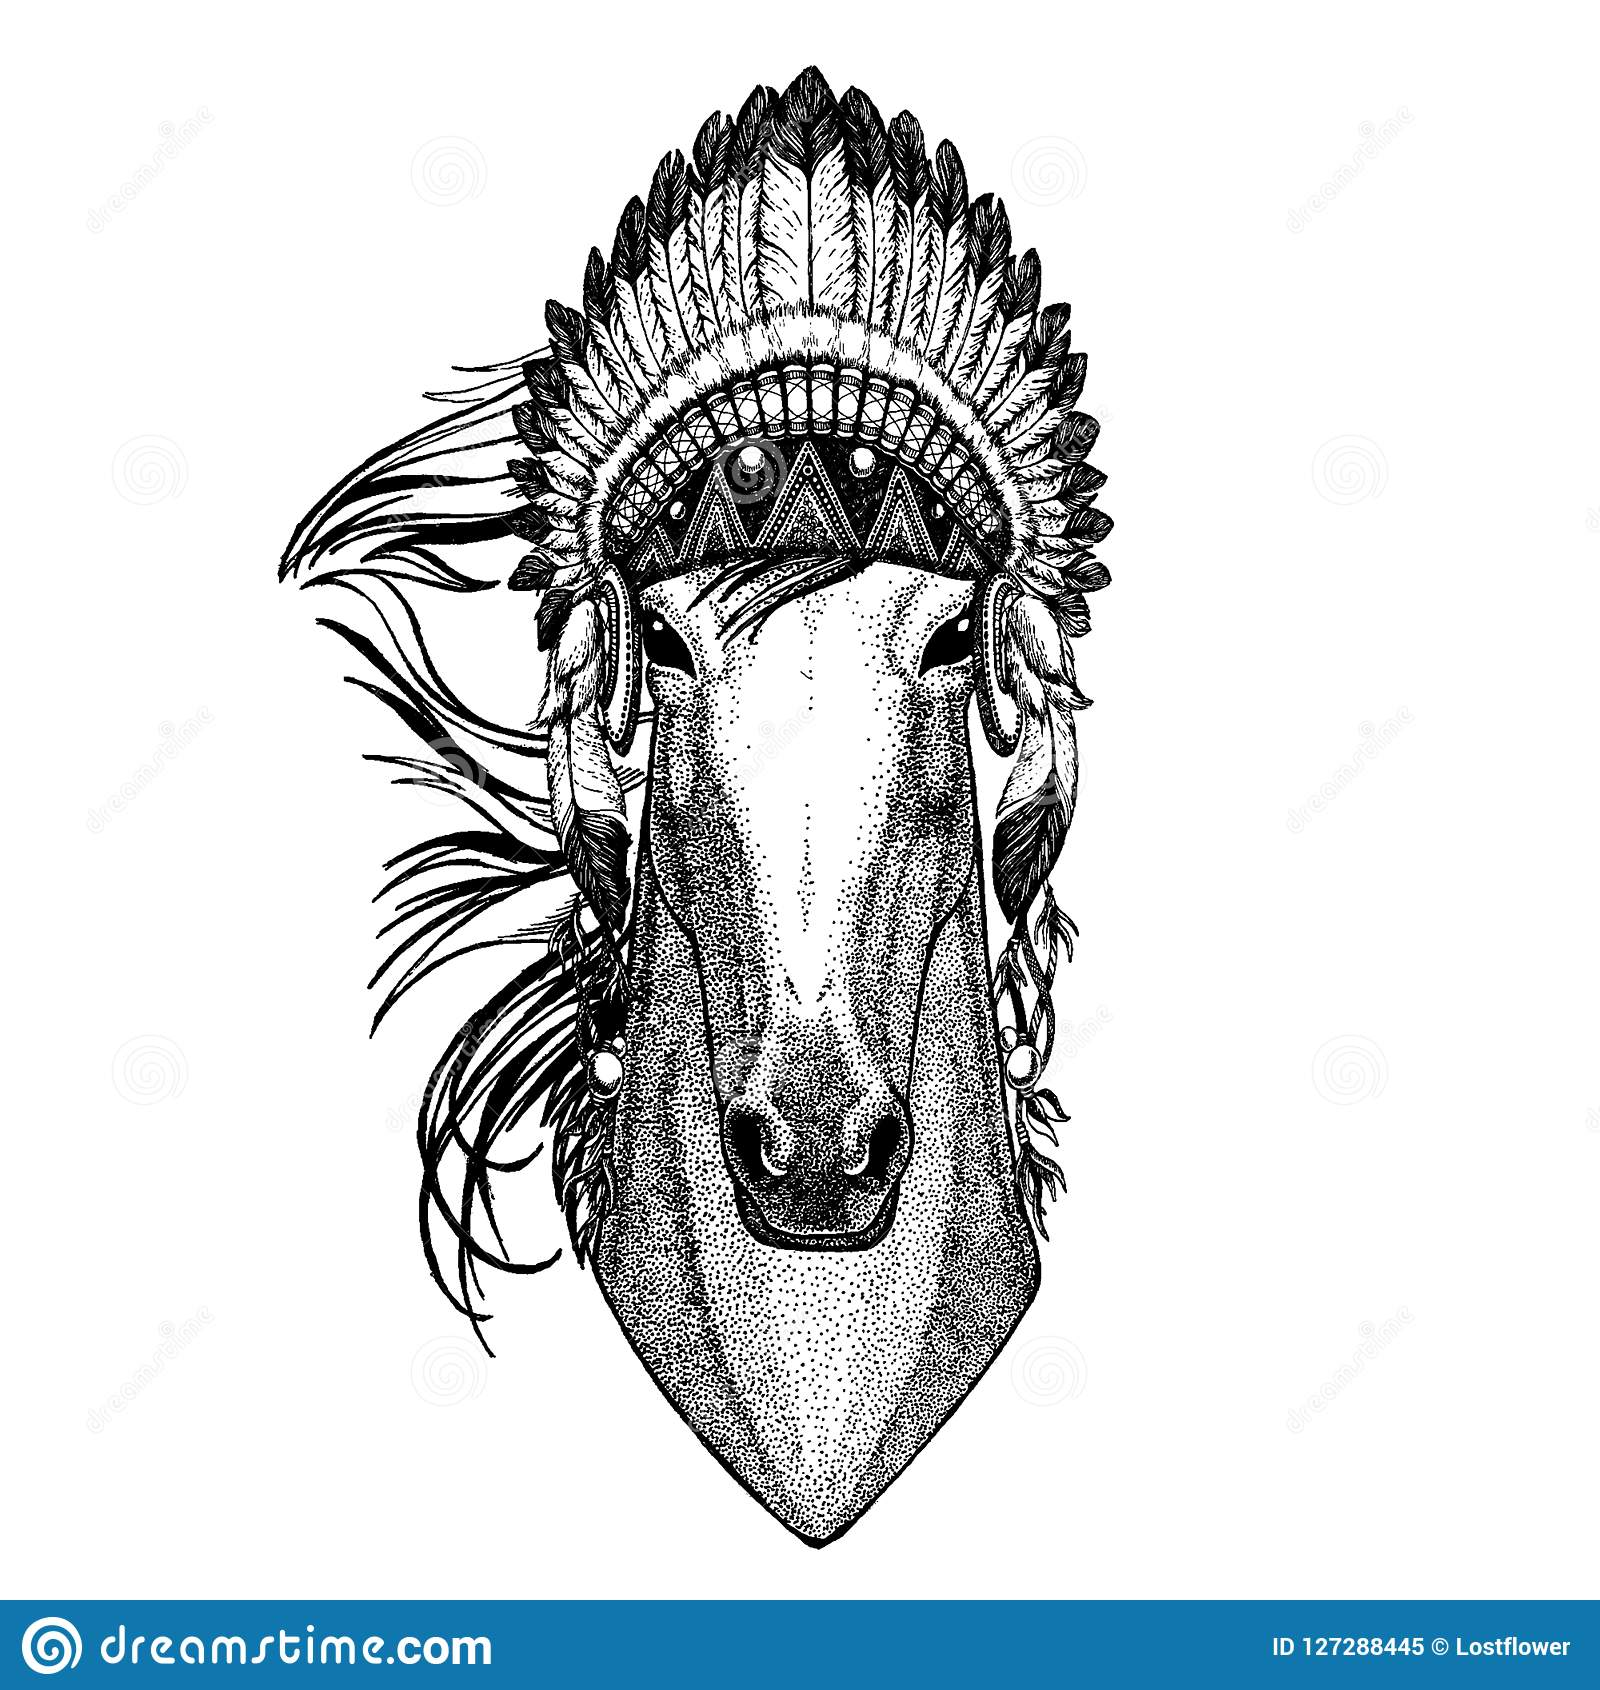 Horse Wild Animal Wearing Inidan Headdress With Feathers Boho Chic Style Illustration For Tattoo Emblem Badge Logo Stock Vector Illustration Of Indian Gypsy 127288445